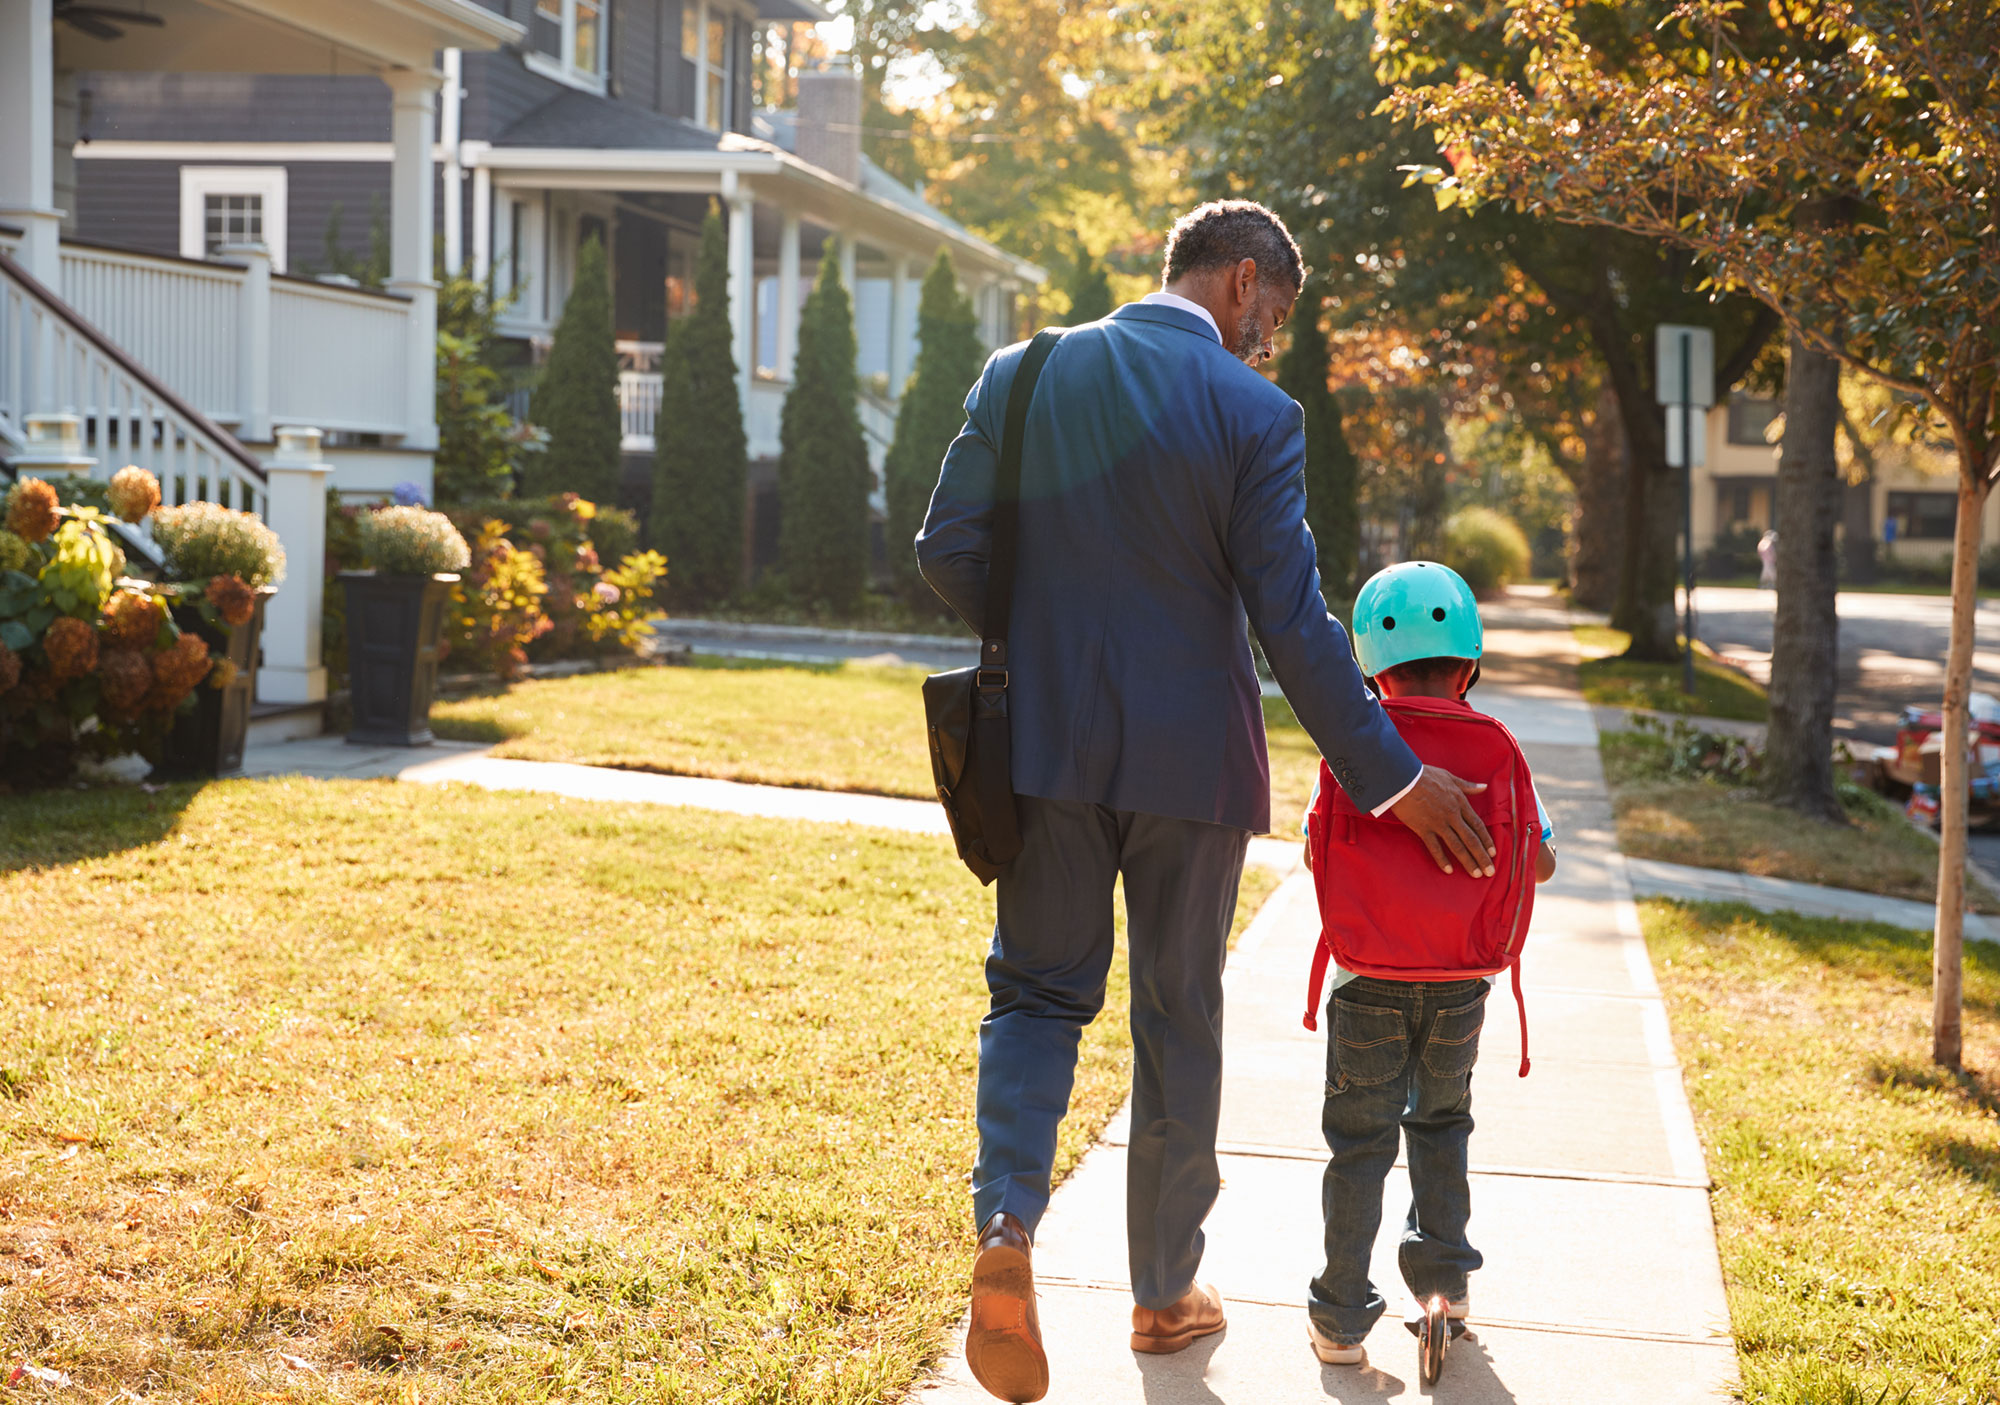 Father walking with son on sidewalk